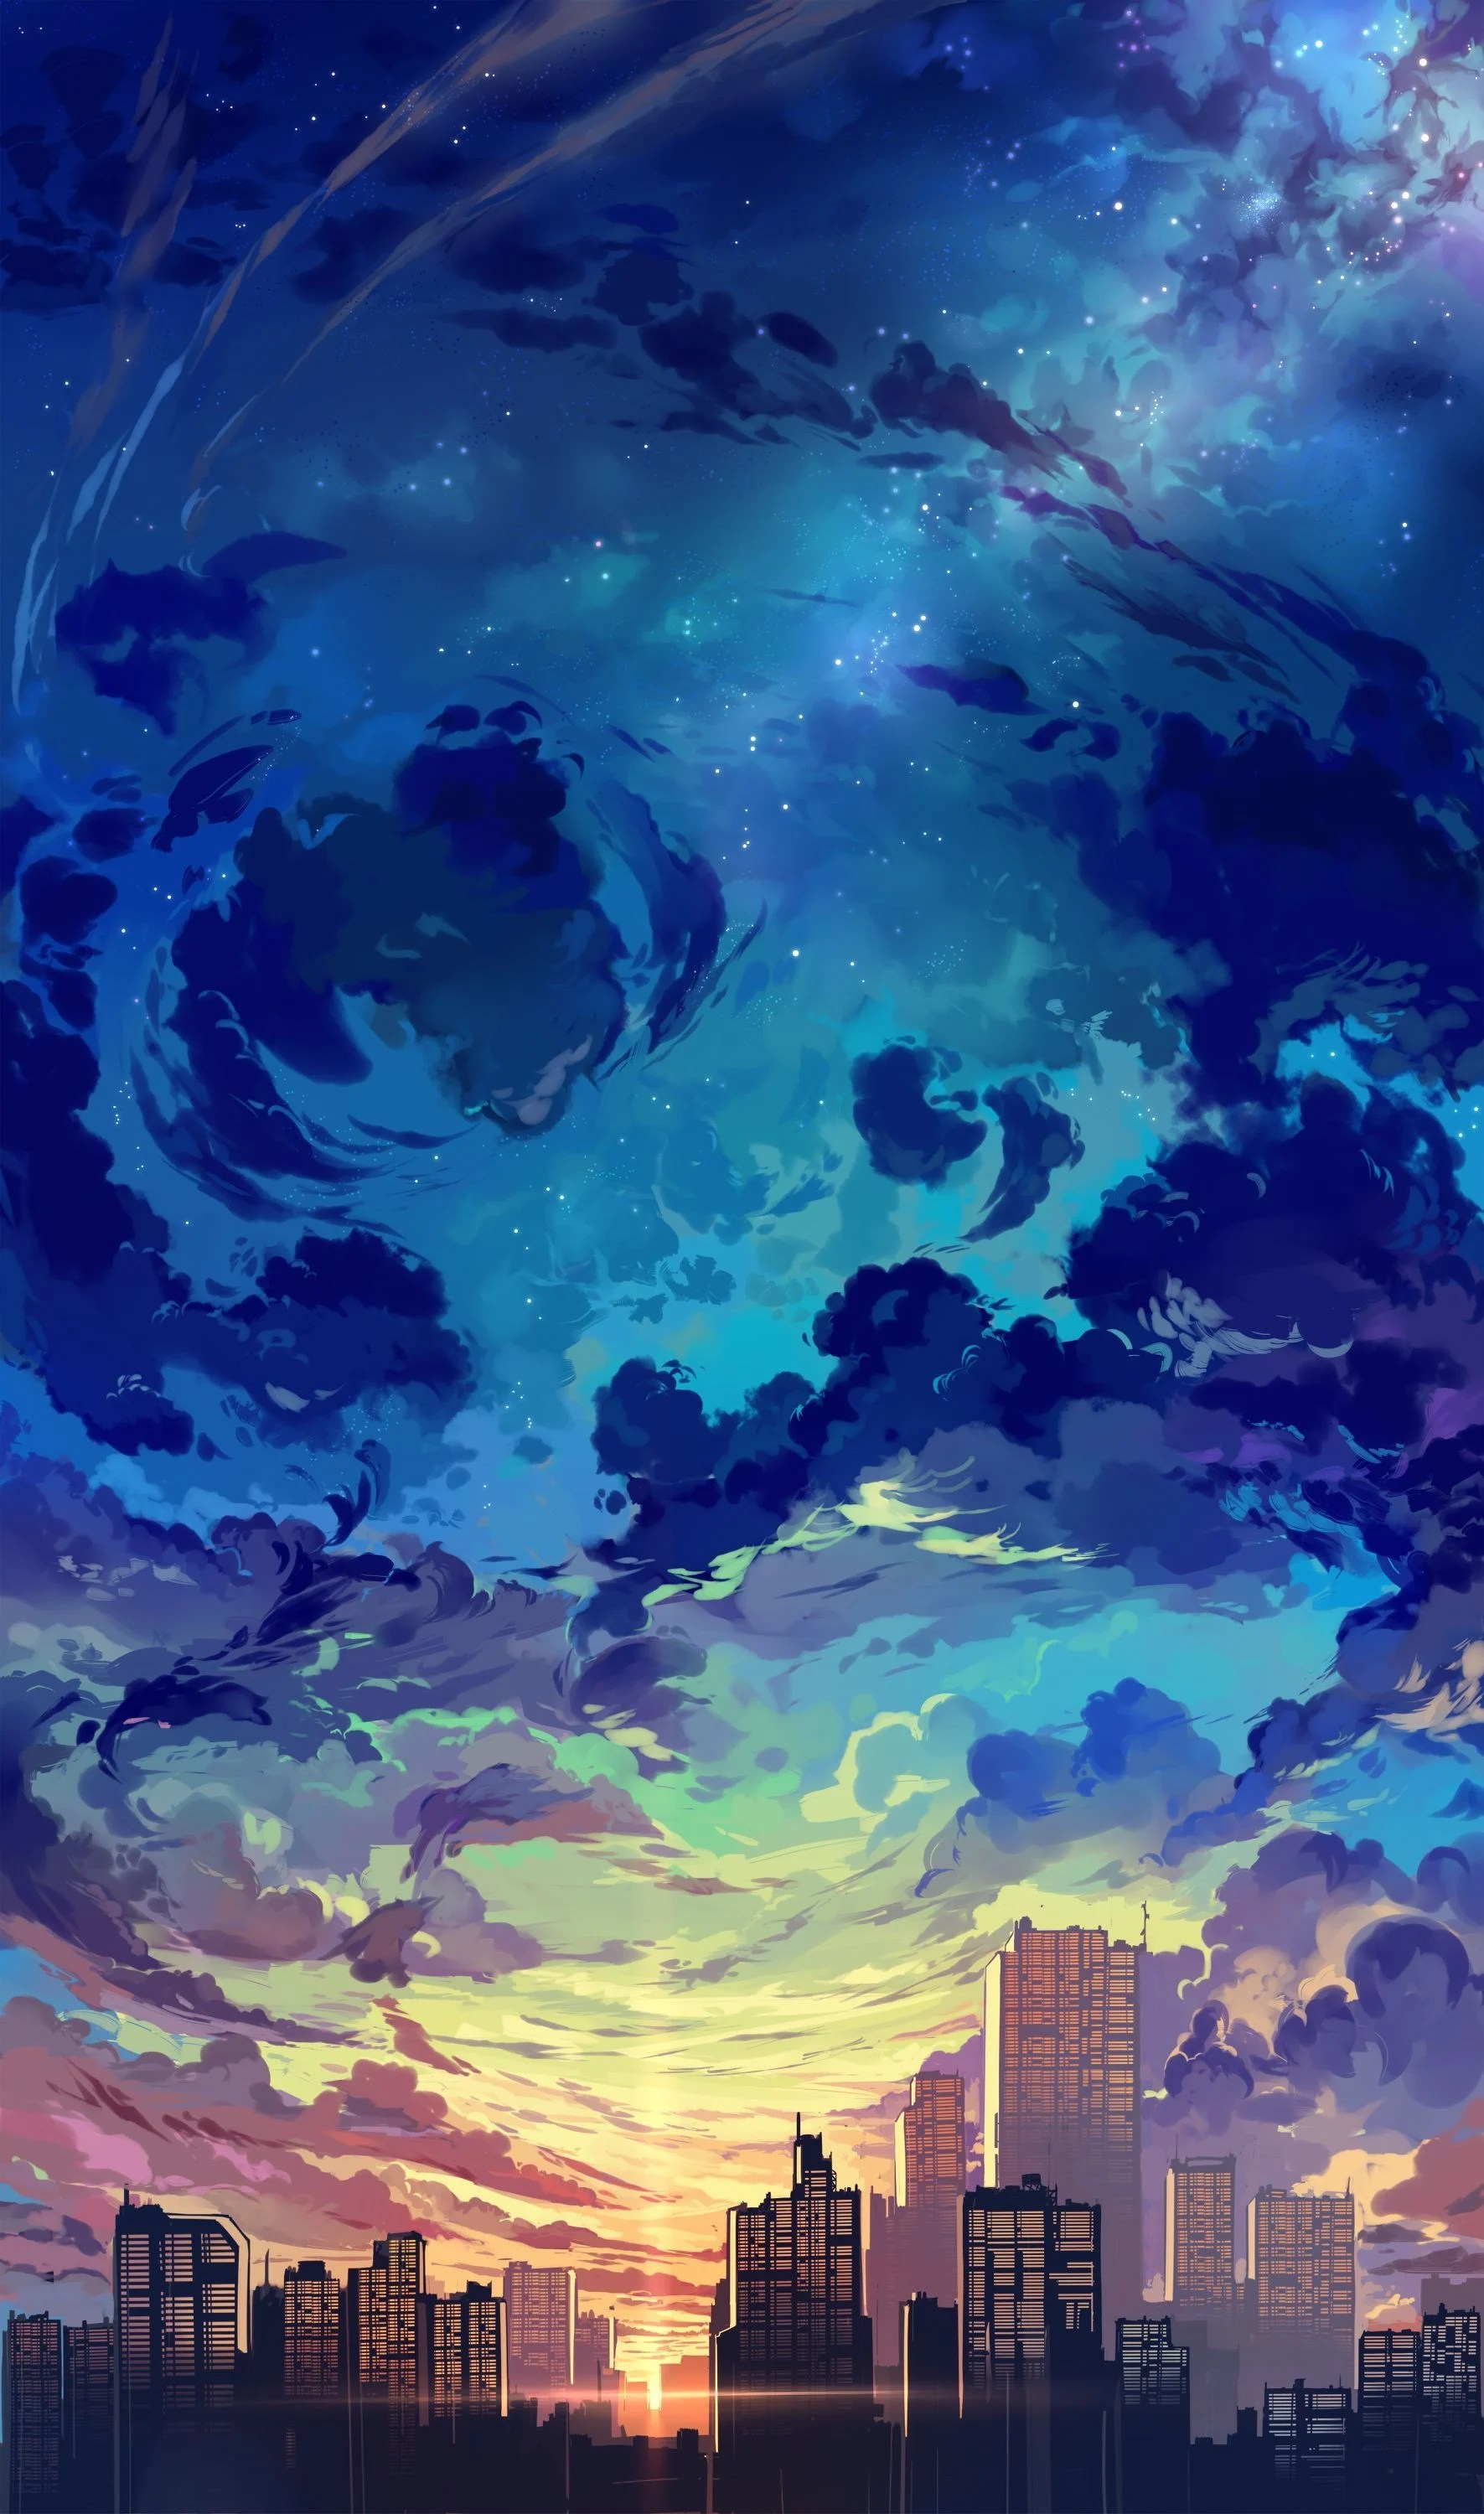 Mlwapp v2.4 · live wallpaper app for android · uninstall mlwapp · contact. Anime Aesthetic Android Wallpapers - Wallpaper Cave